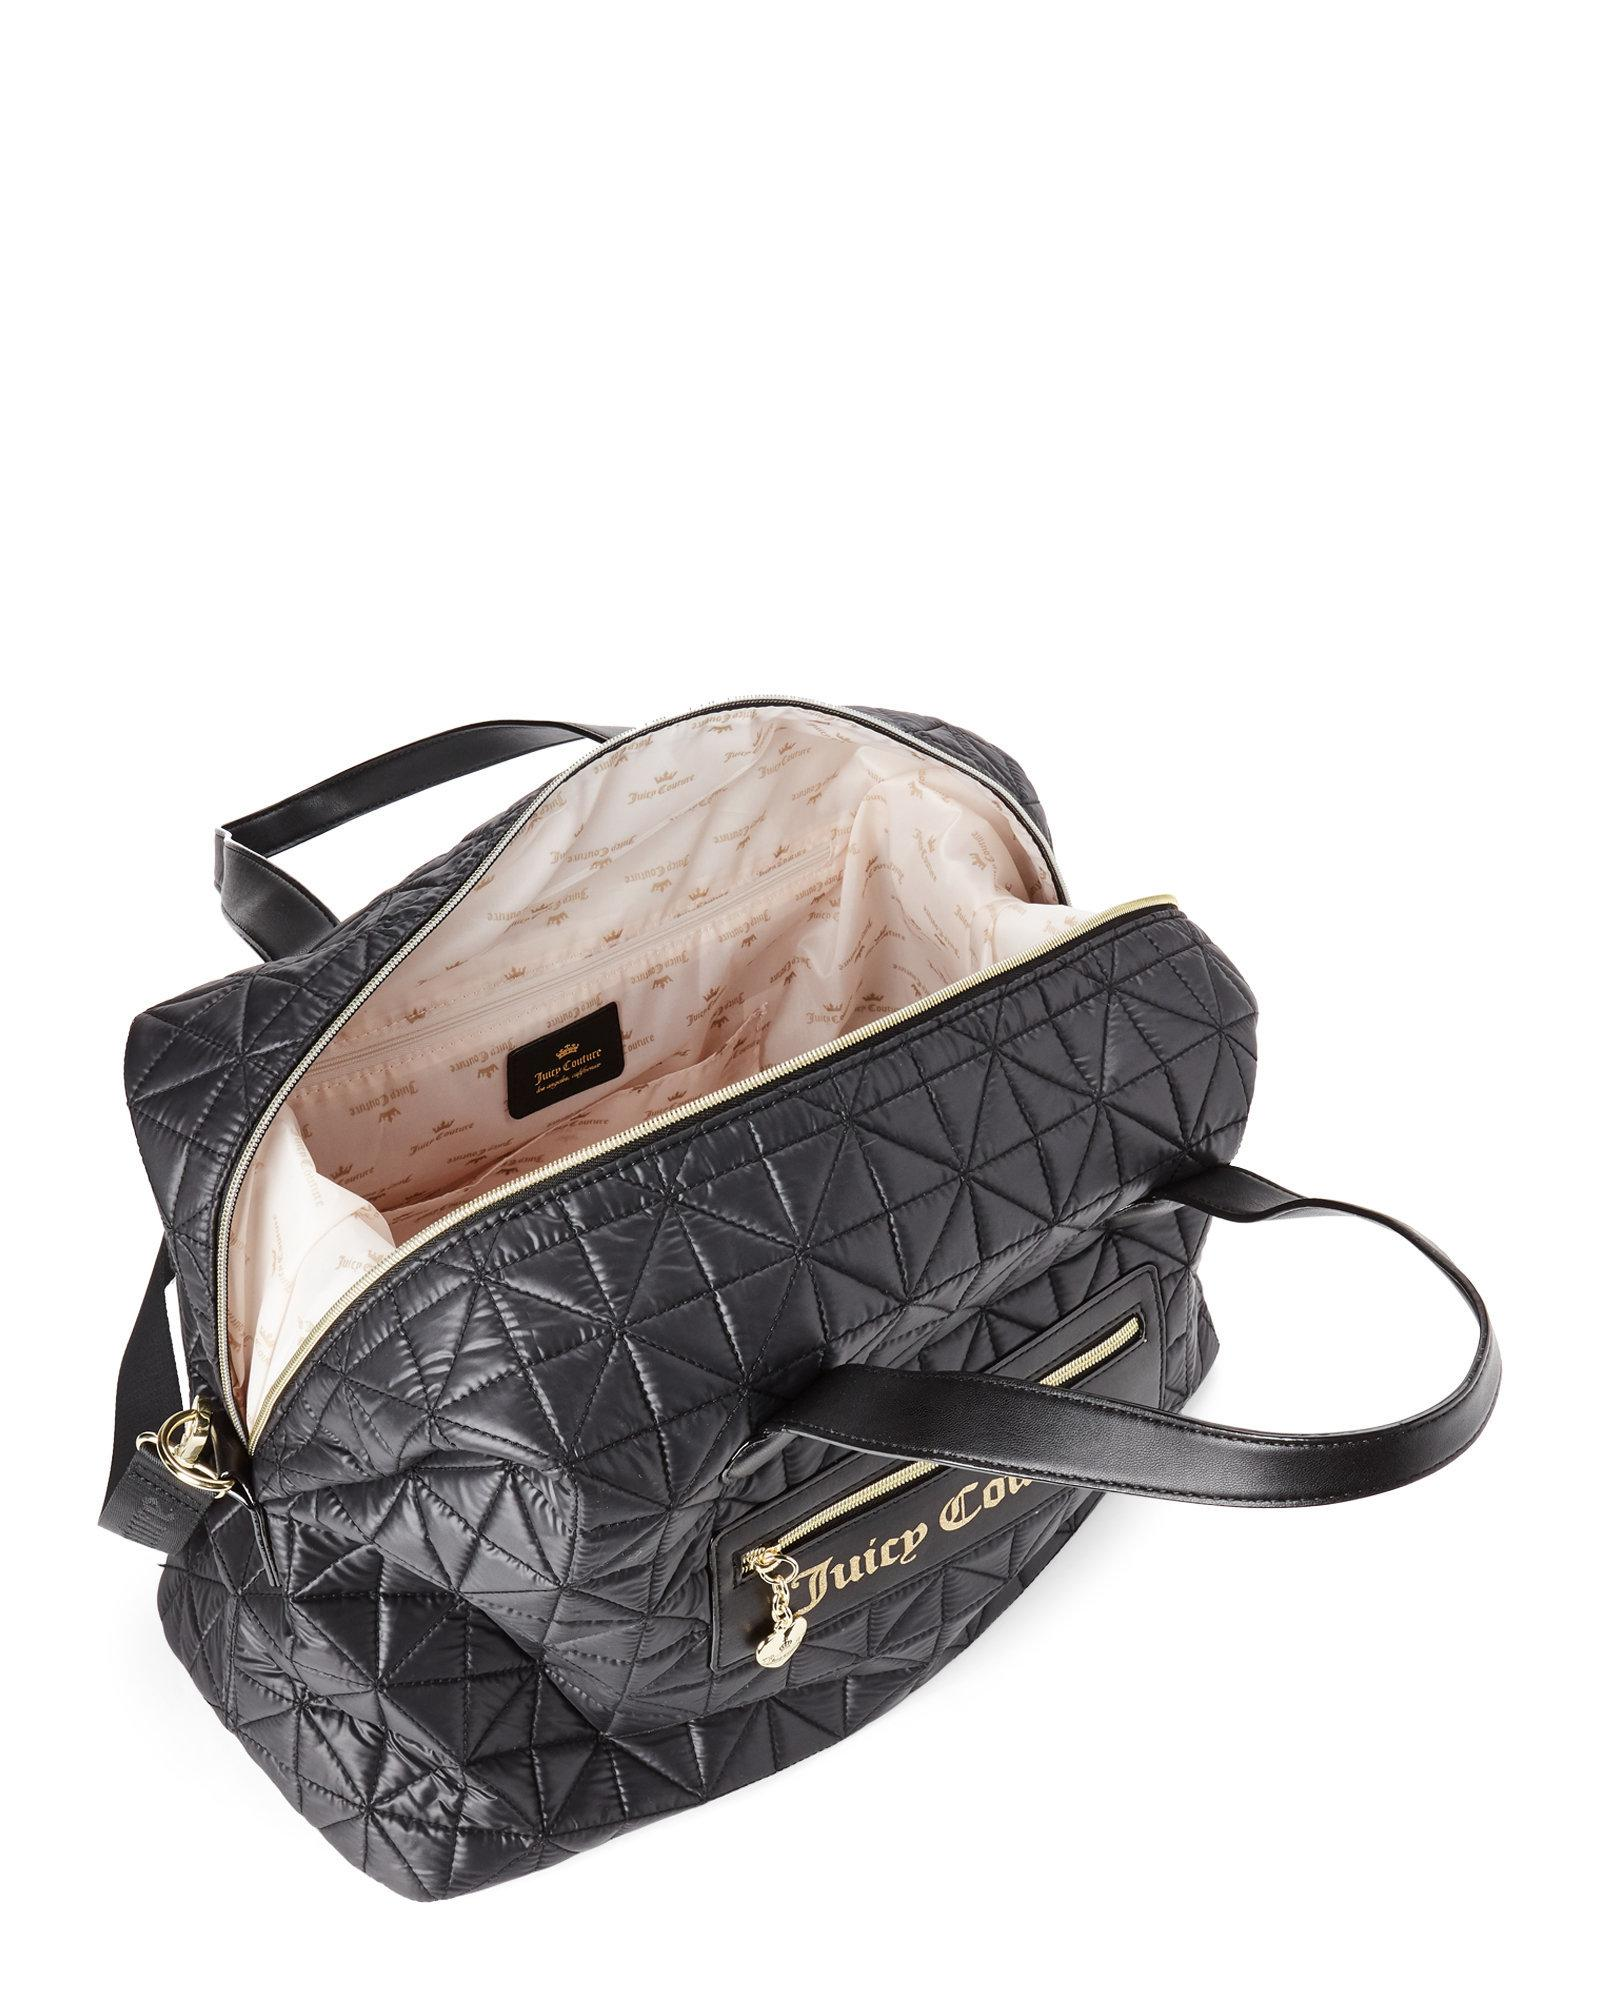 Lyst - Juicy Couture Black Starburst Quilted Weekender in Black 421bba18e